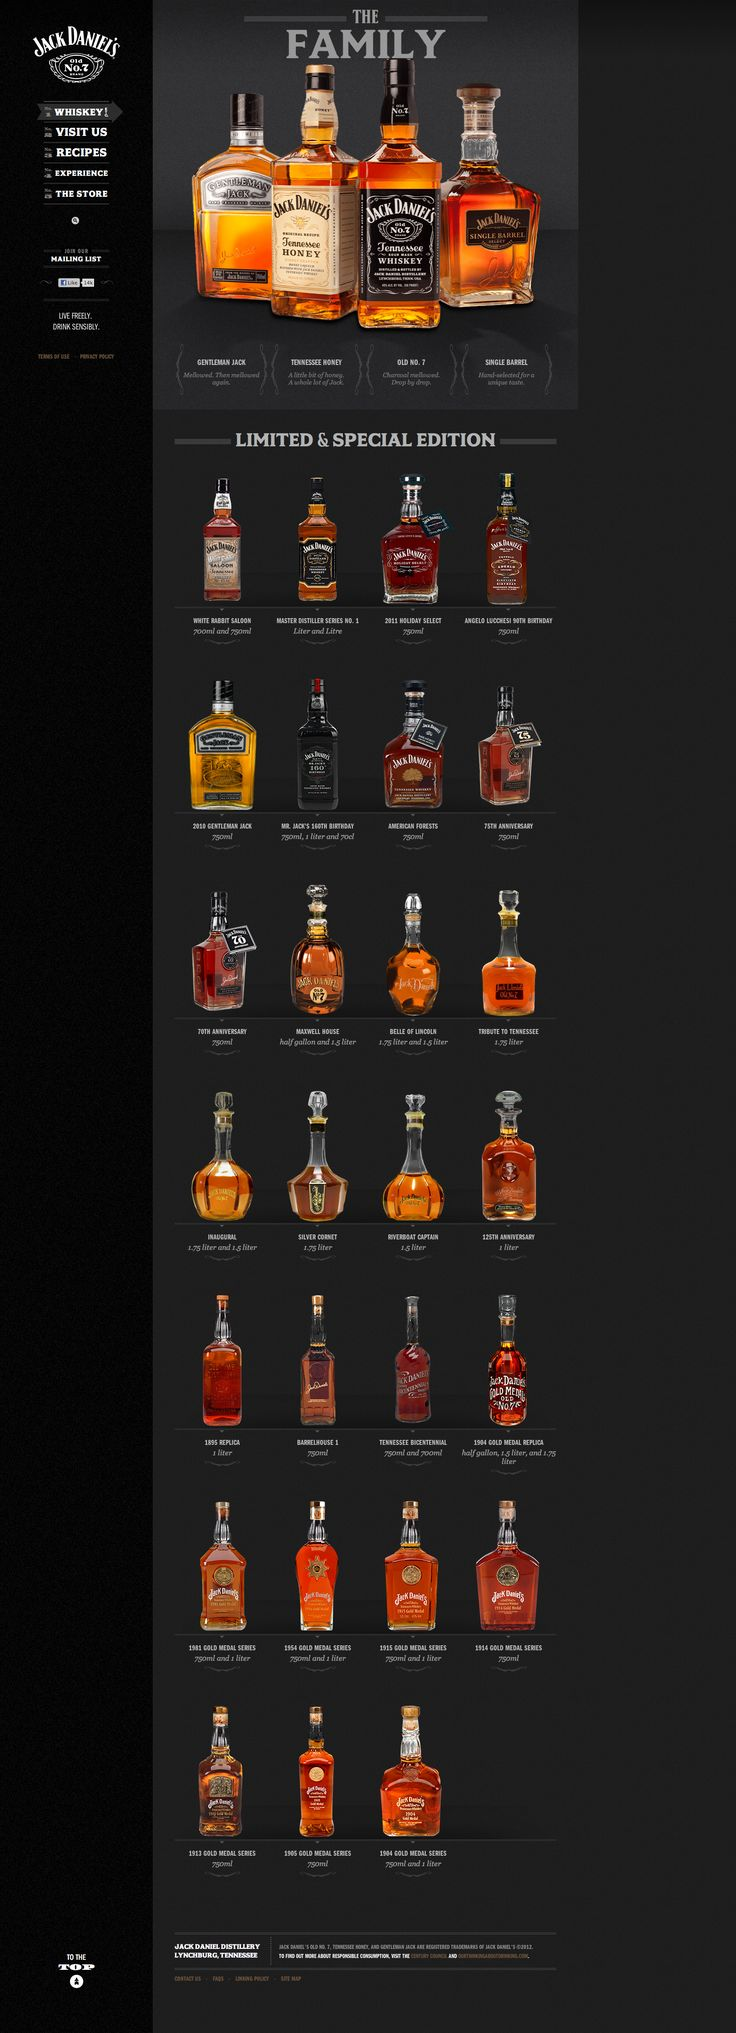 Wow that's a lot of different Jack Daniels.